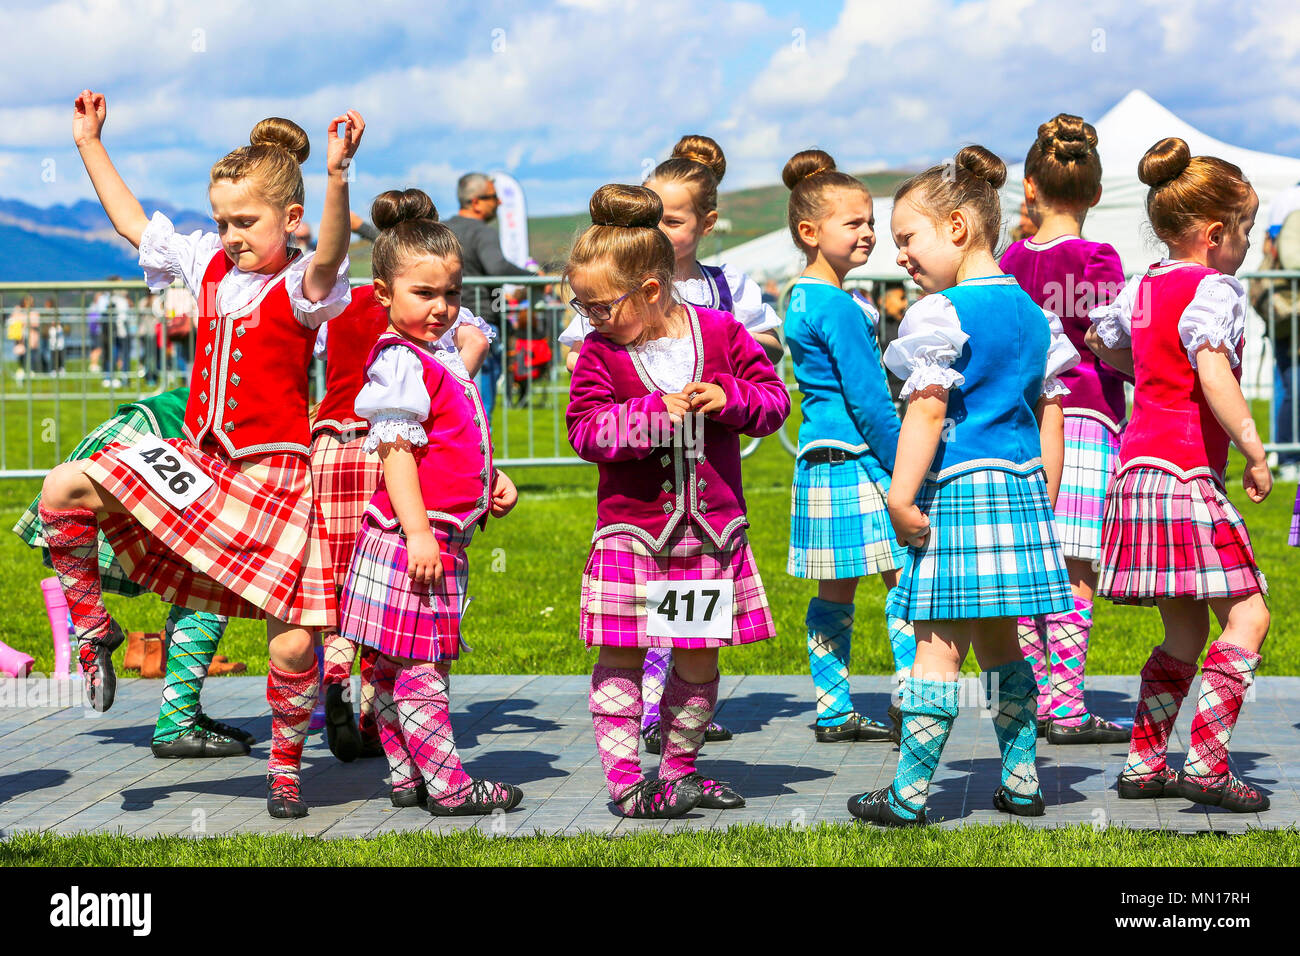 """Gourock, UK. 13th May 2018. Gourock starts off the """"Games"""" season with hundreds of pipers, """"heavies"""" and dancers from across the country, all competing in traditional Scottish Highland Games that include pipe bands, individual piping, country dancing for all ages and all the traditional heavyweight competitions such as tossing the caber, throwing the hammer and lifting the Keppoch Stone.Thousands of spectators turned out on a fine sunny May Sunday to cheer on all the competitors. Credit: Findlay/Alamy Live News Stock Photo"""